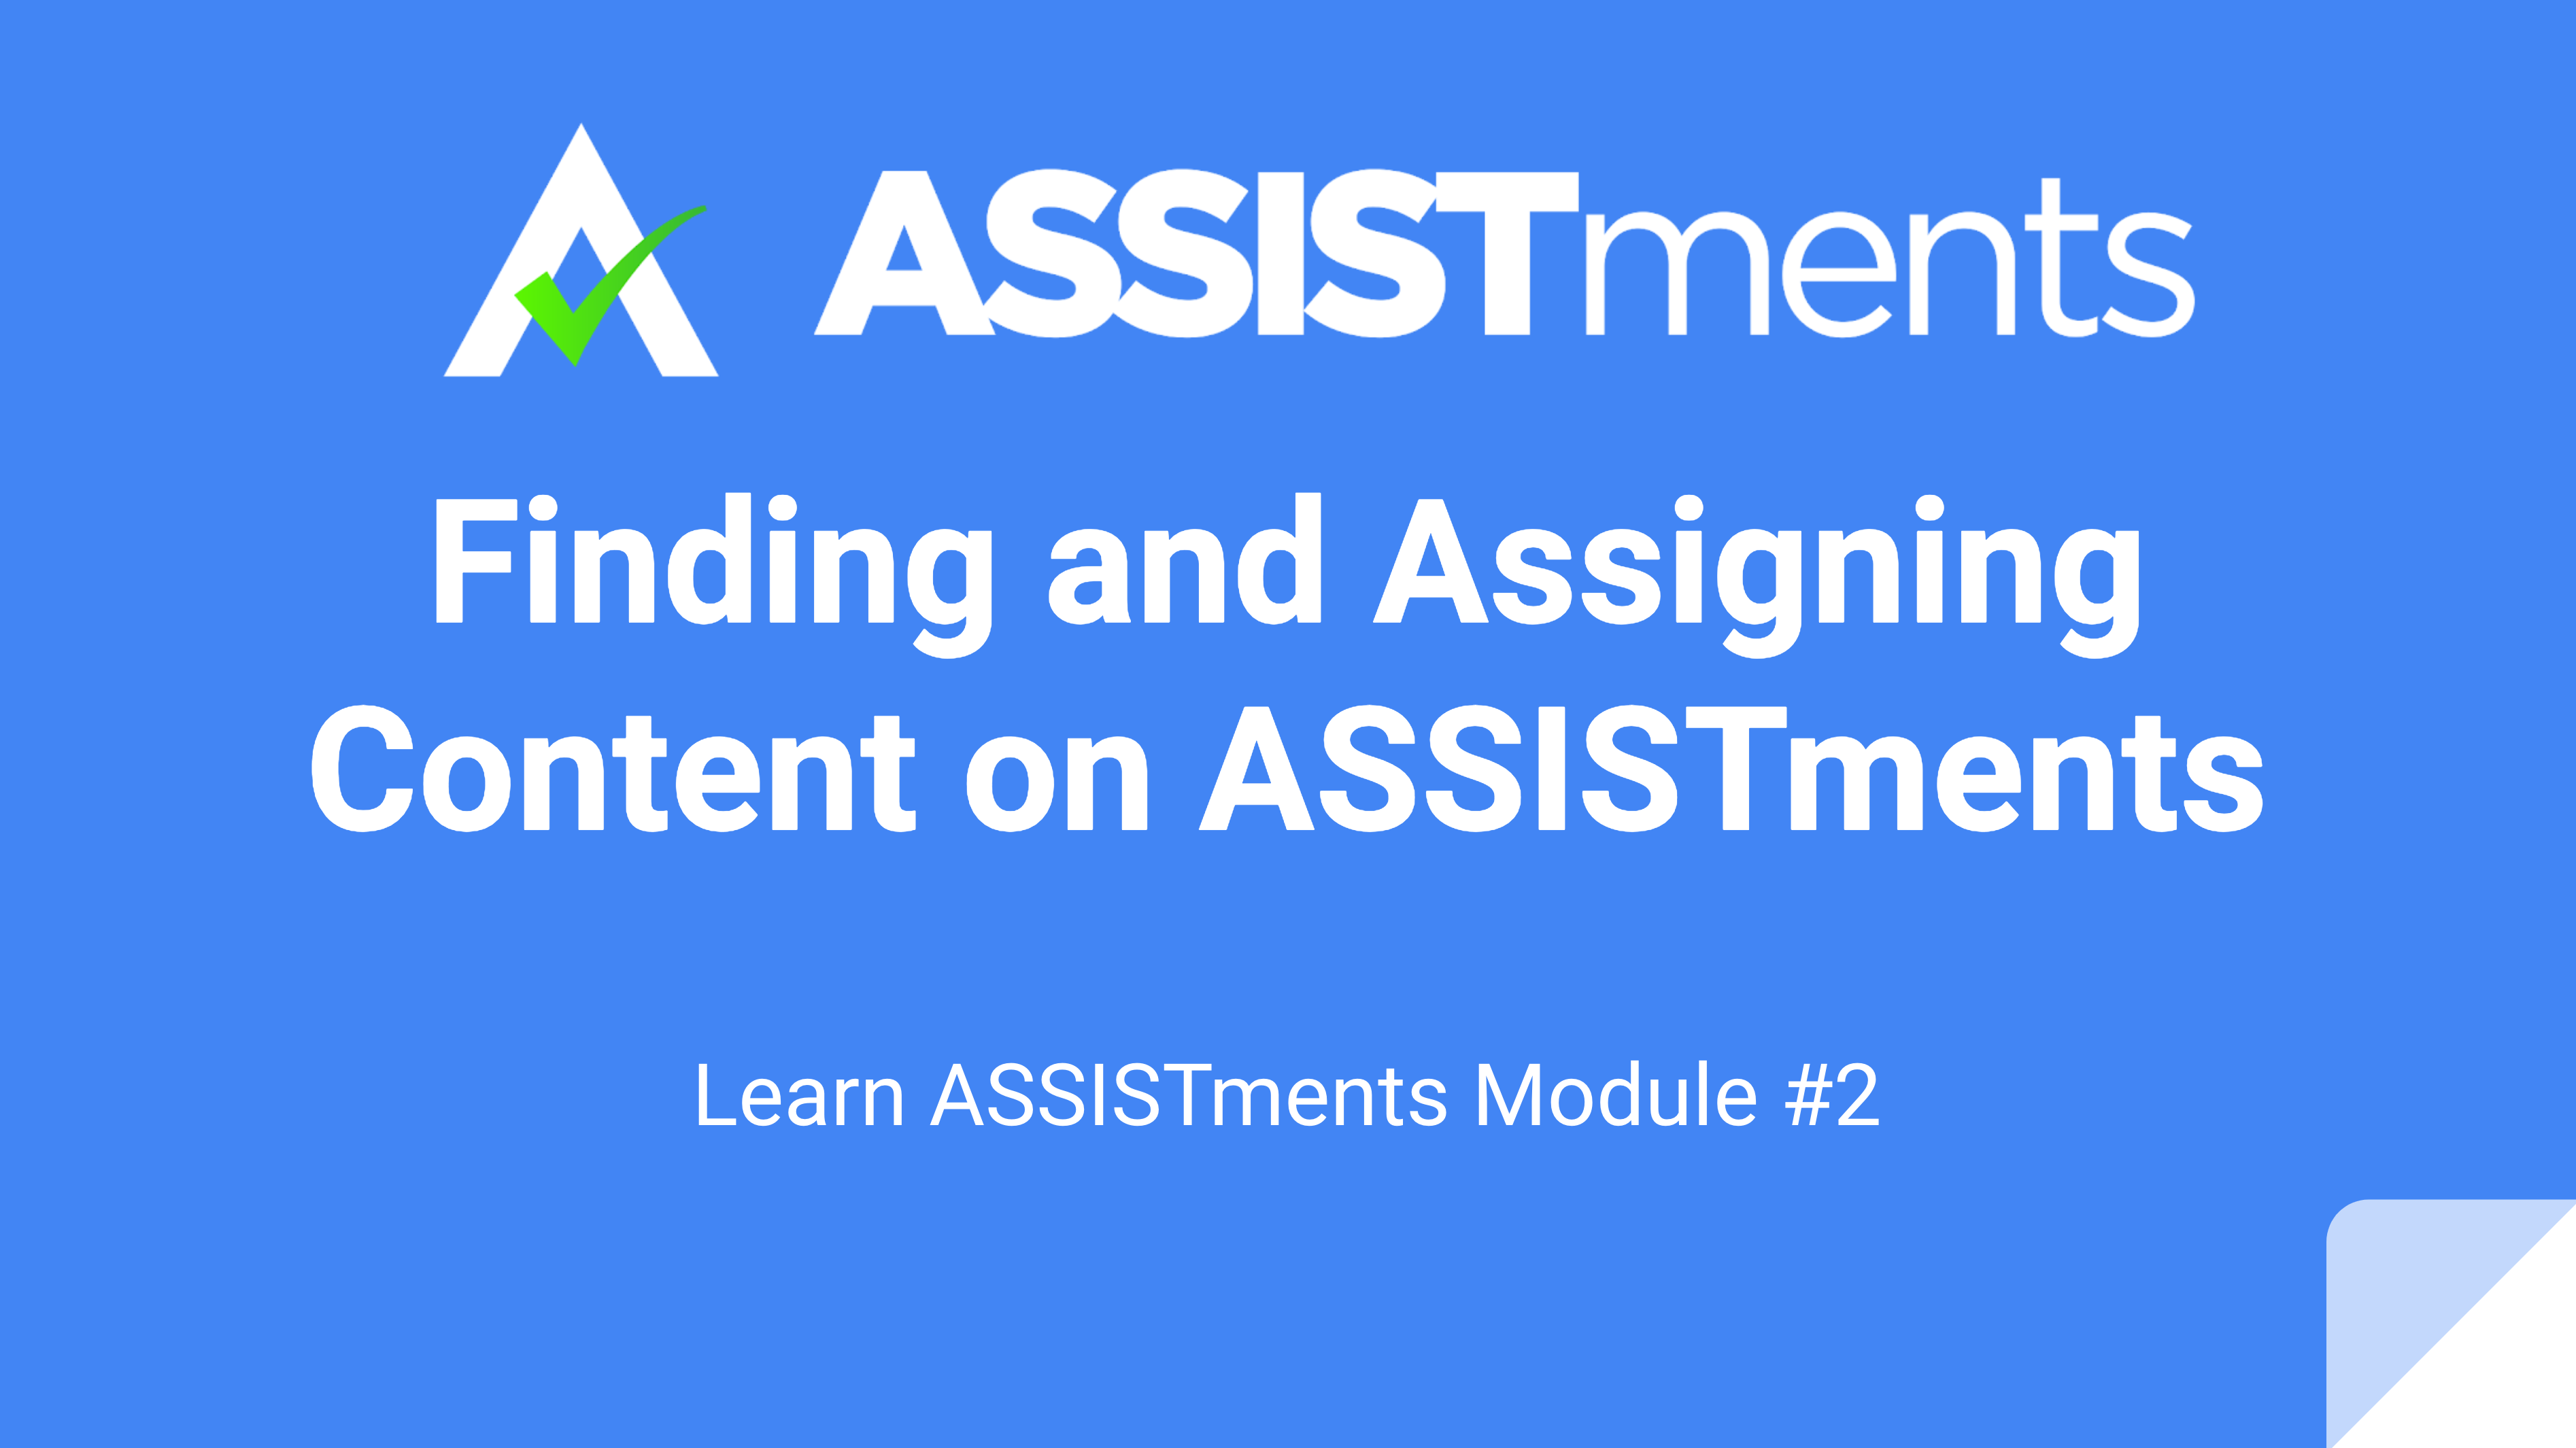 Learn ASSISTments Module #2